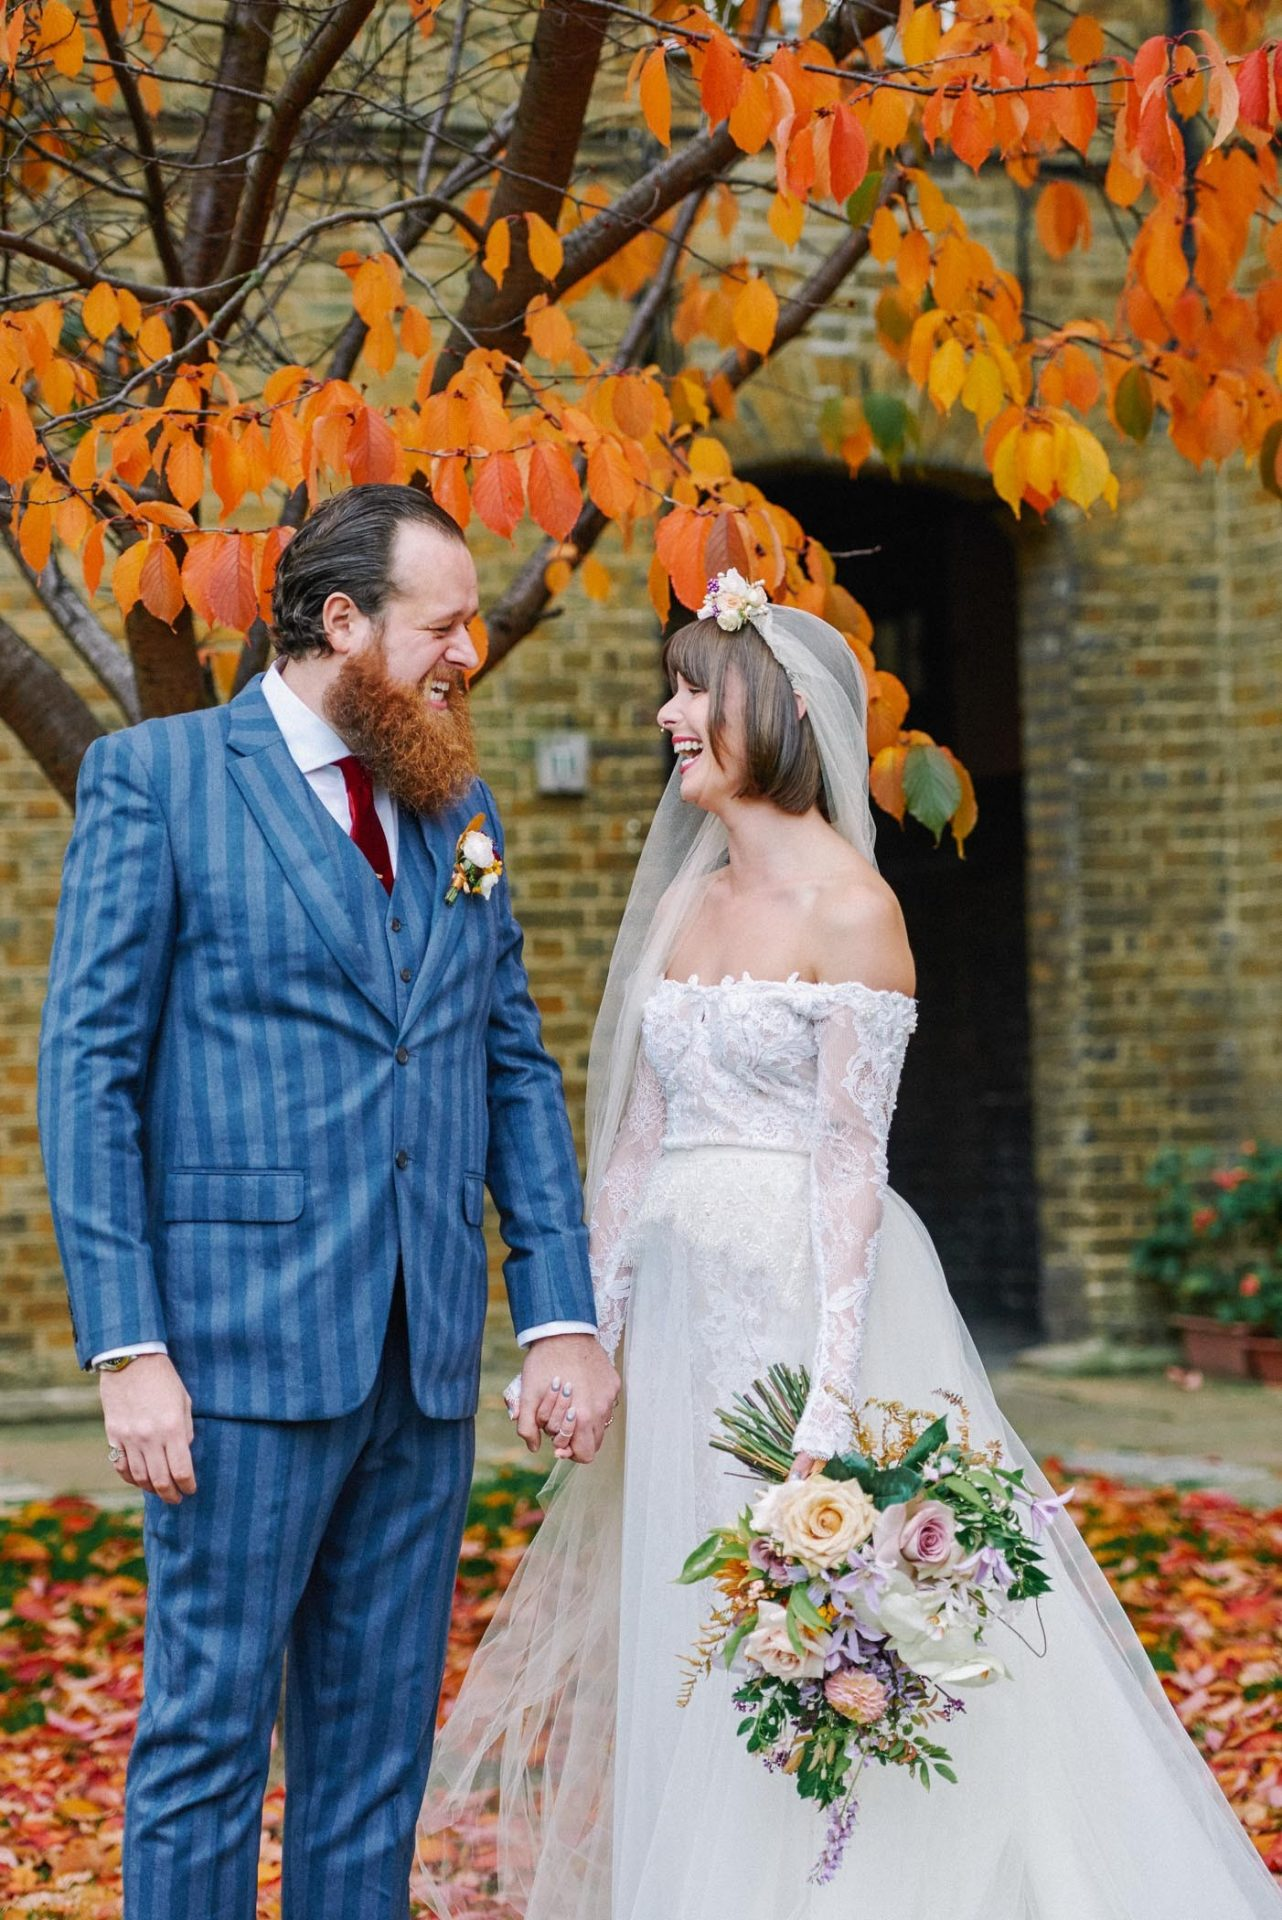 vintage looking bride and groom holding hands whilst laughing surrounded by autumn leaves at the Asylum in London